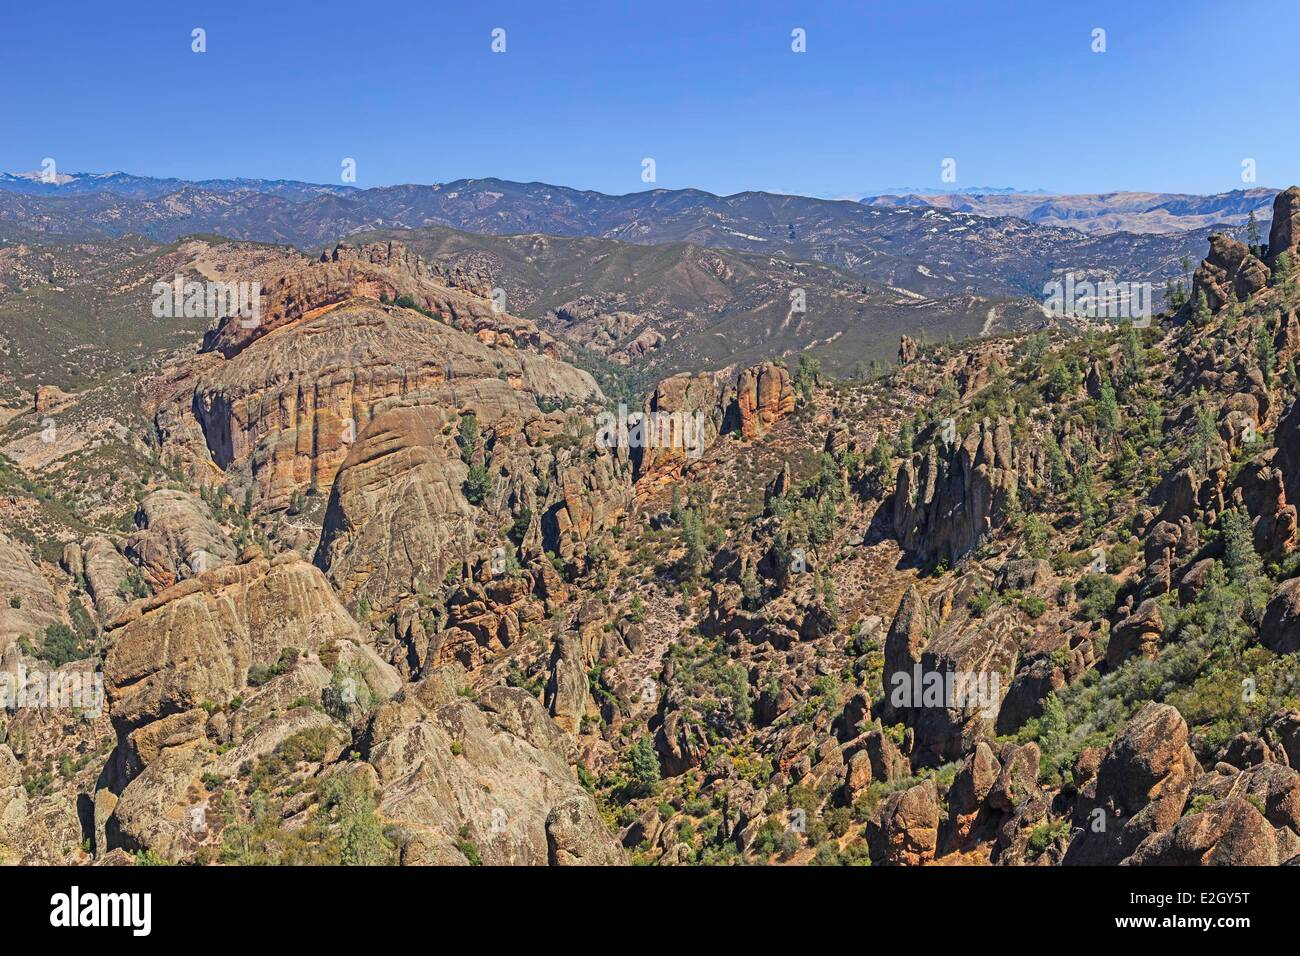 United states california california pacific coast ranges pinnacles united states california california pacific coast ranges pinnacles national park near san andreas fault west side eroded volcanic rock formations in high publicscrutiny Image collections